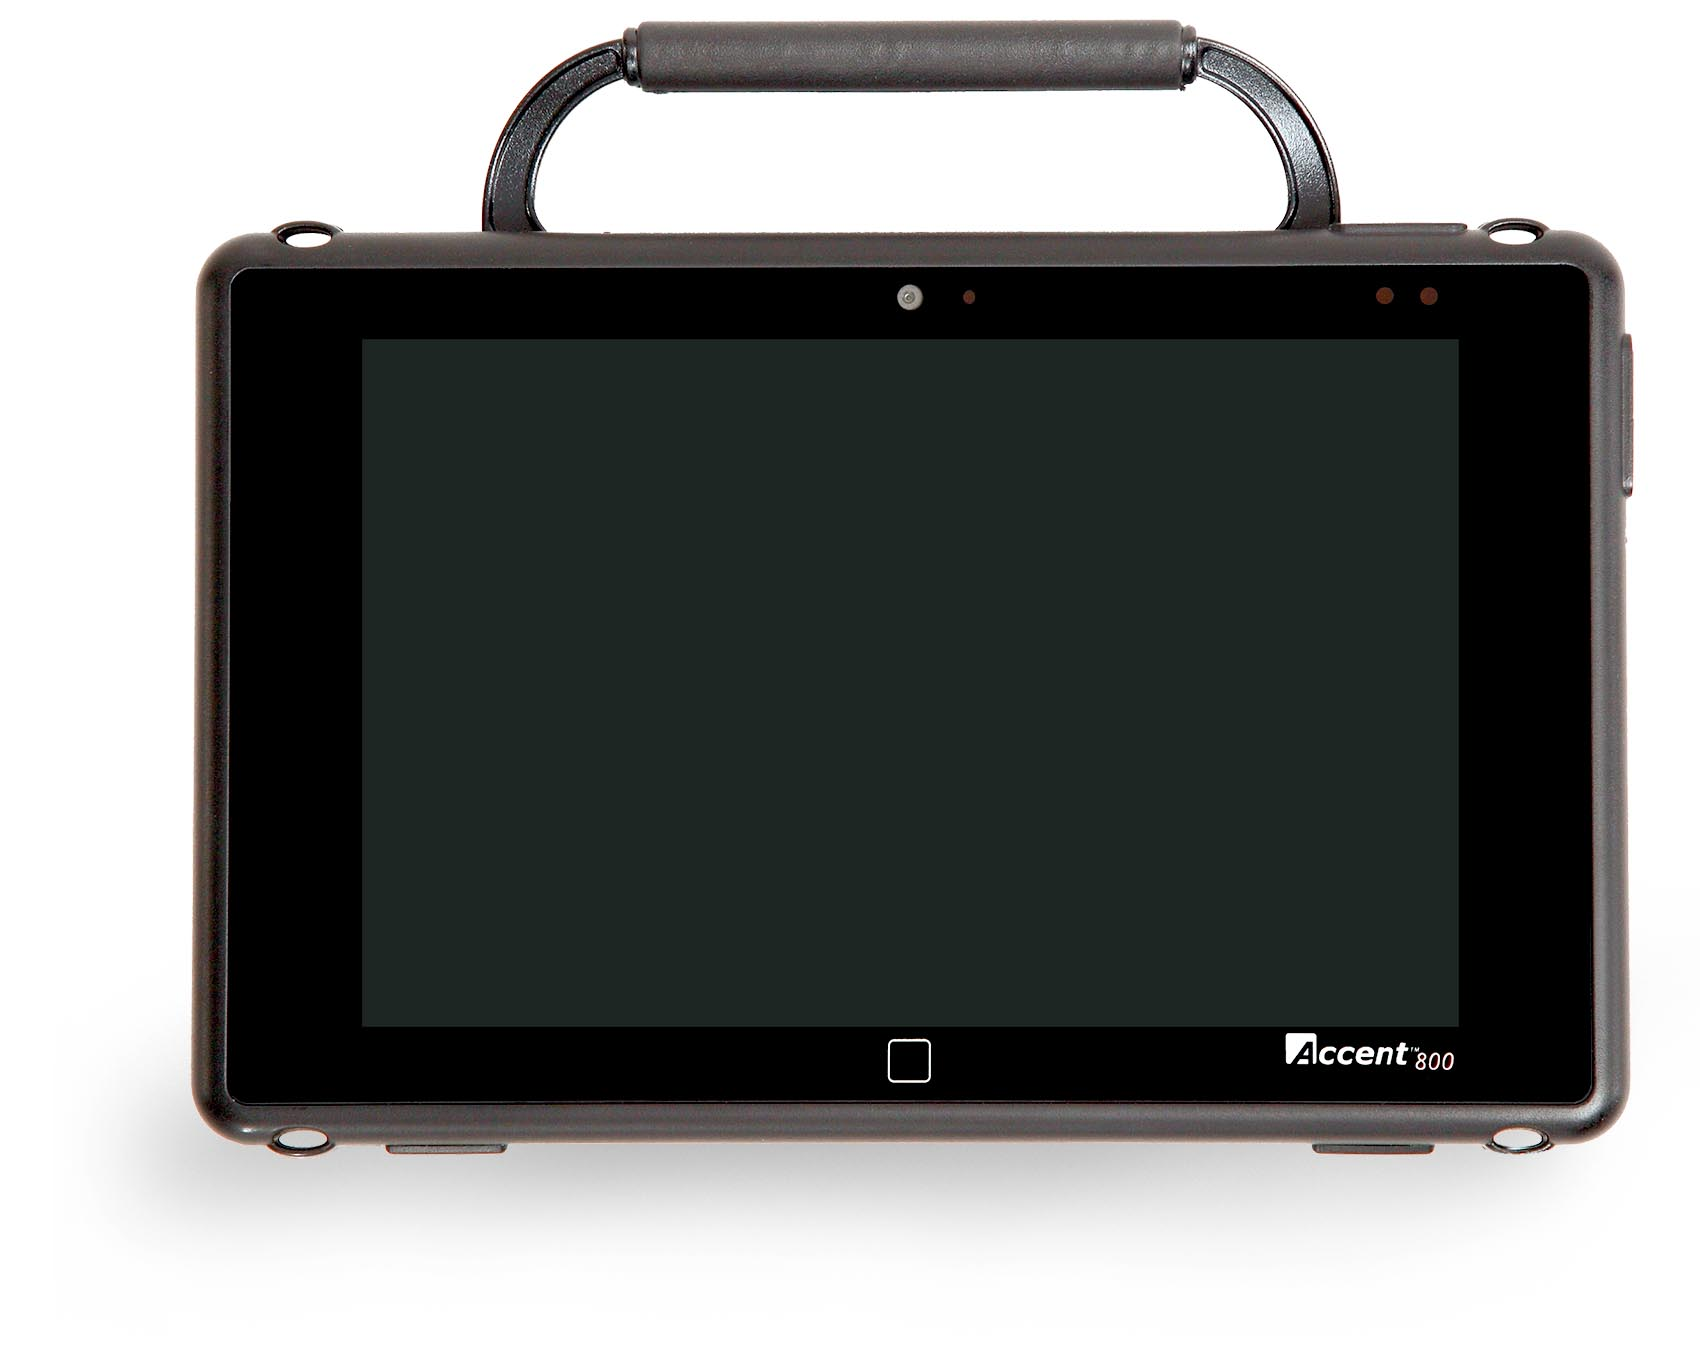 Accent 800 Overview Display Image